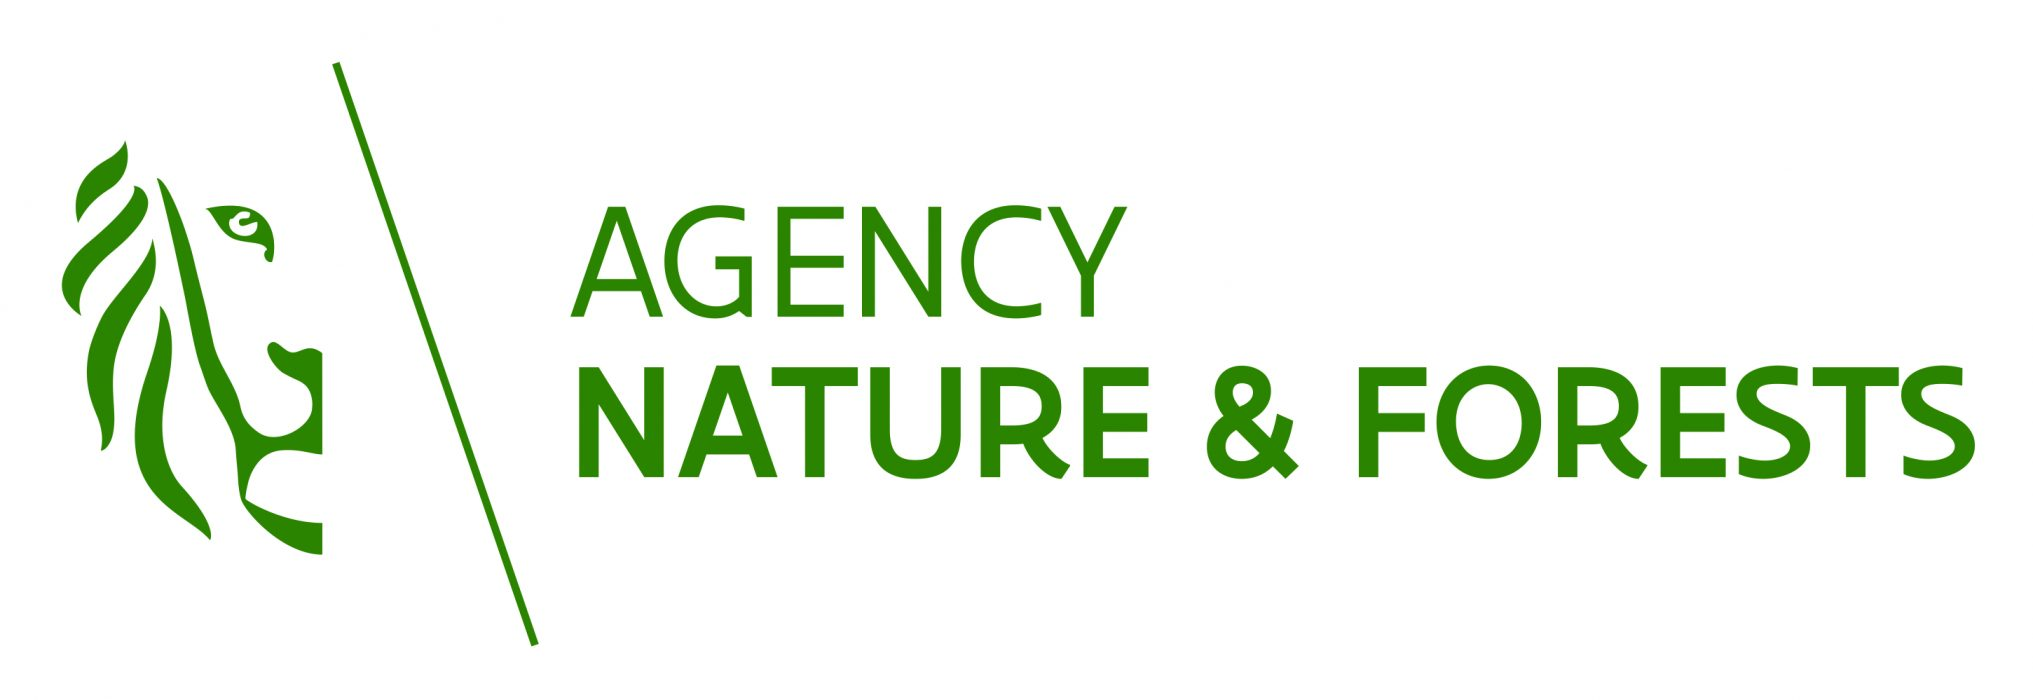 sponsorlogo Agency Nature  Forests pms364